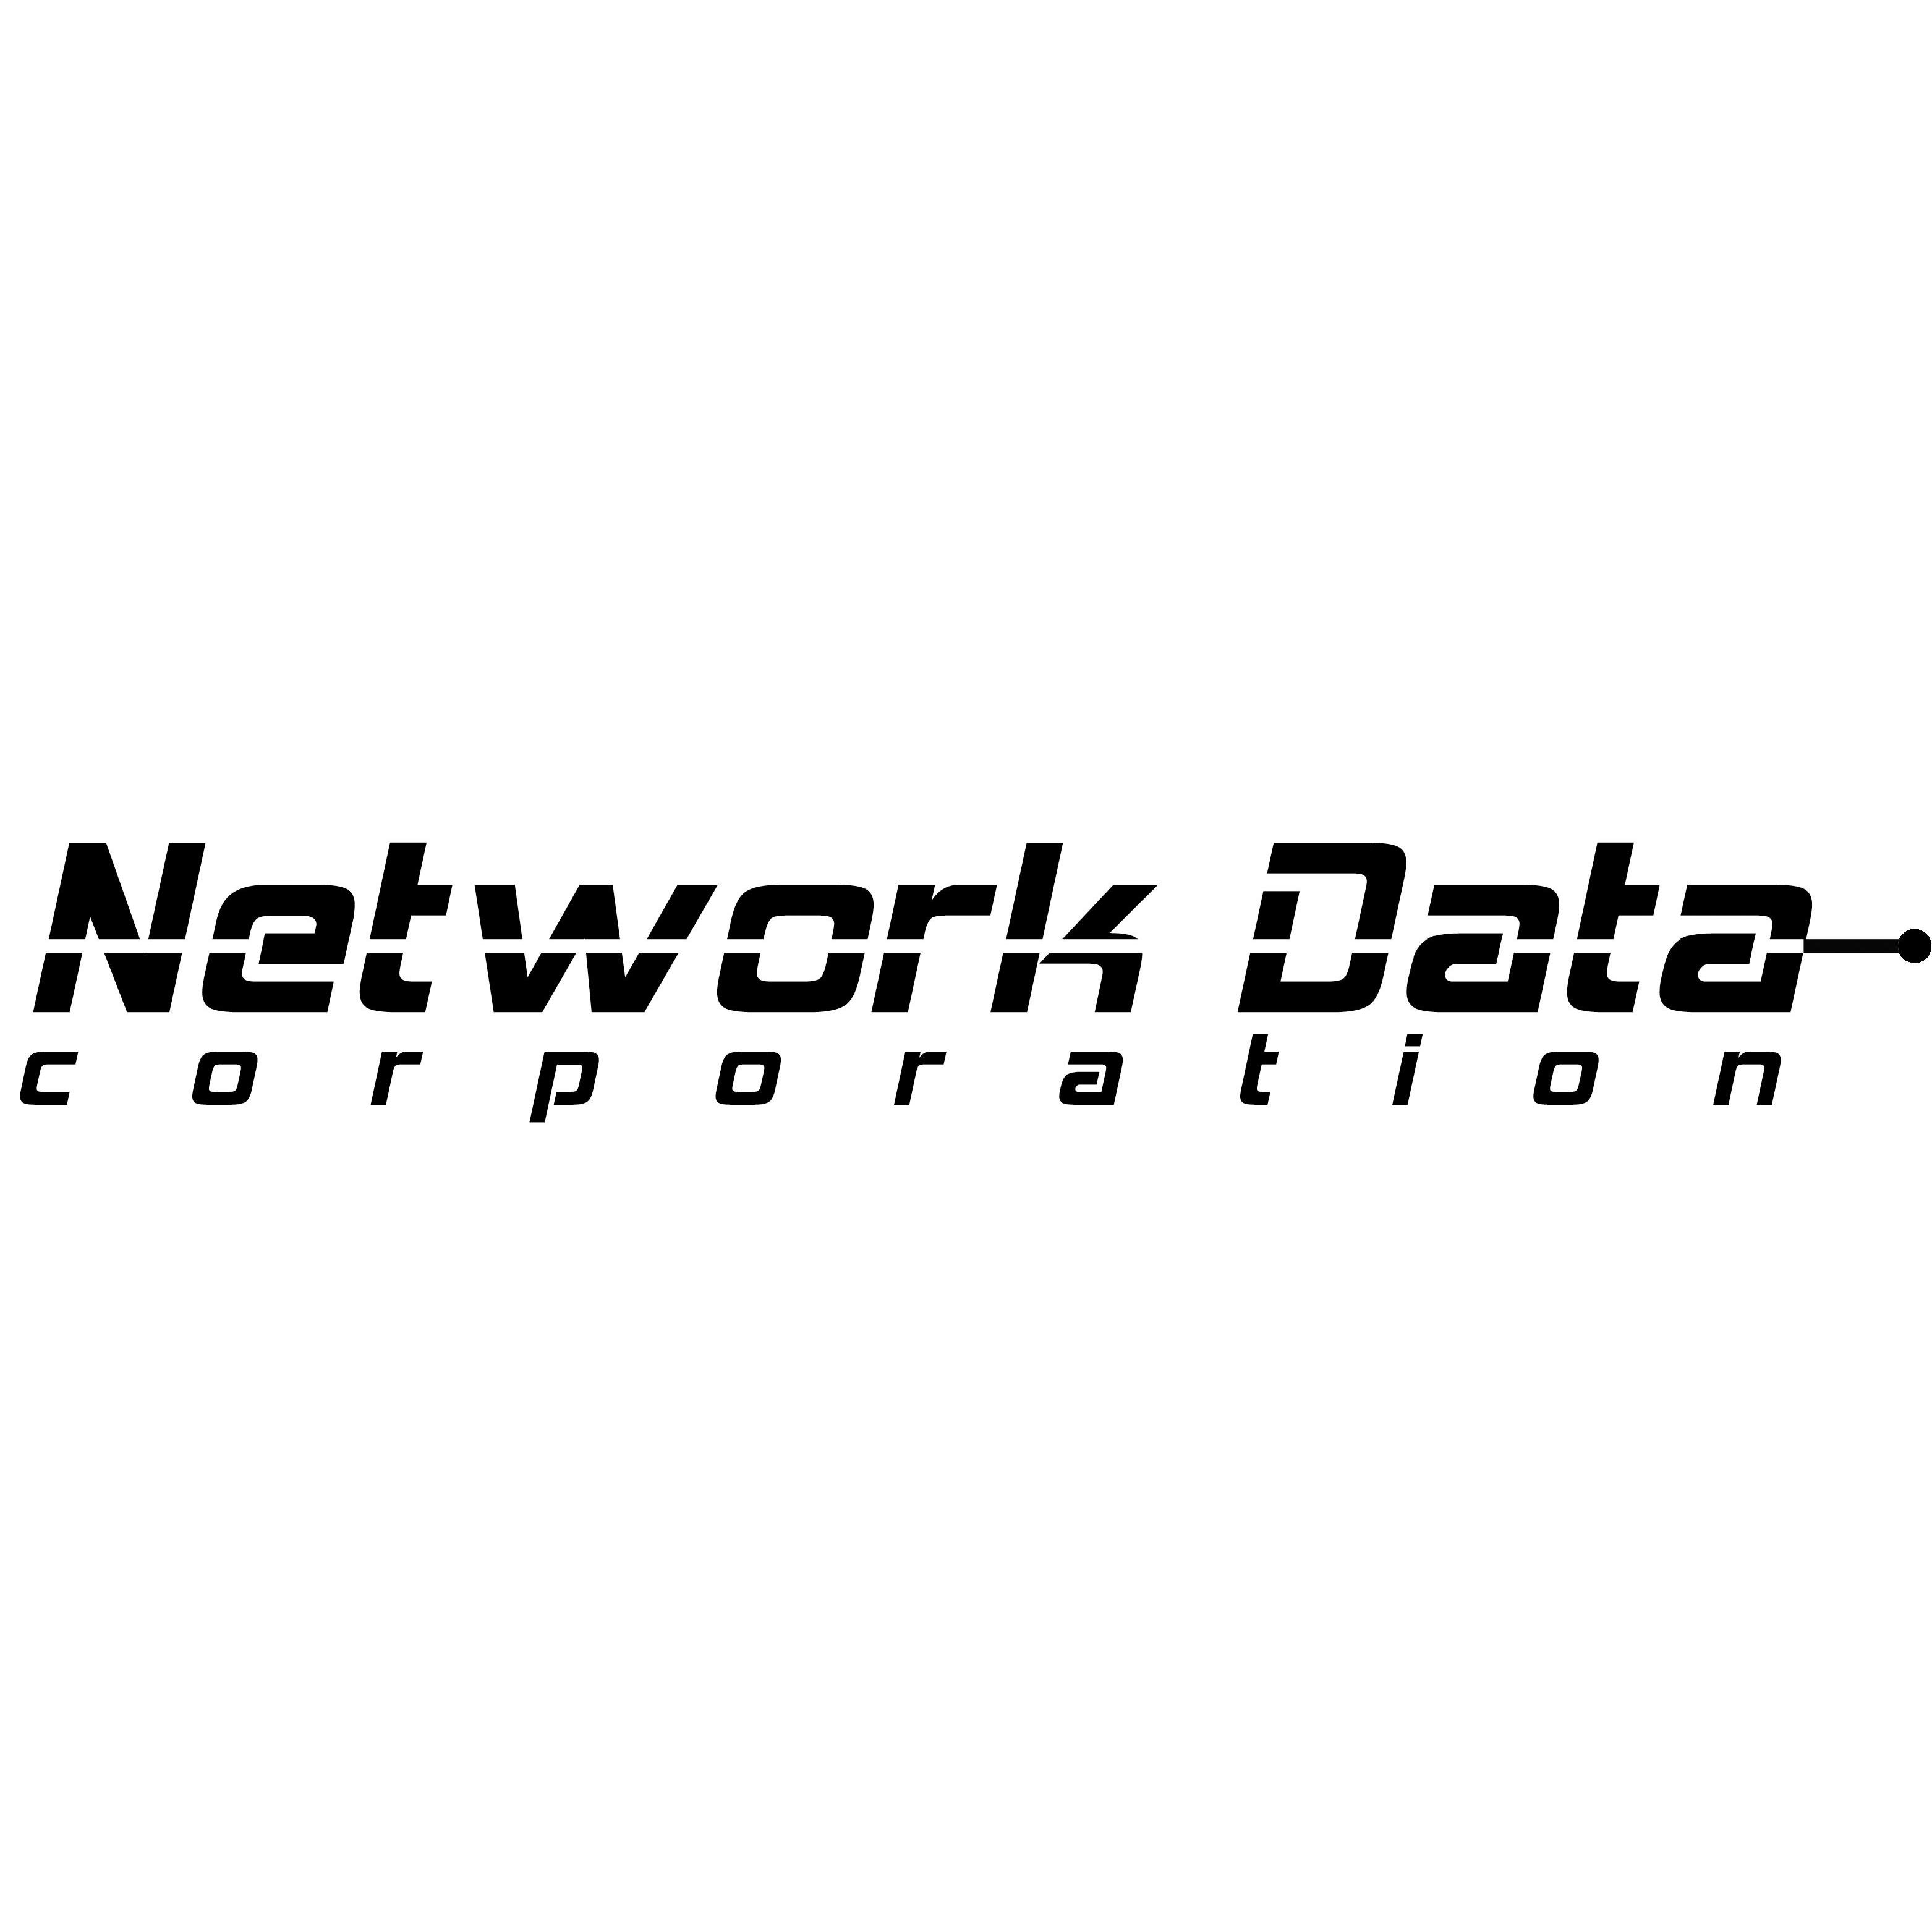 Network Data Corporation - Chesterfield, MO - Computer Consulting Services